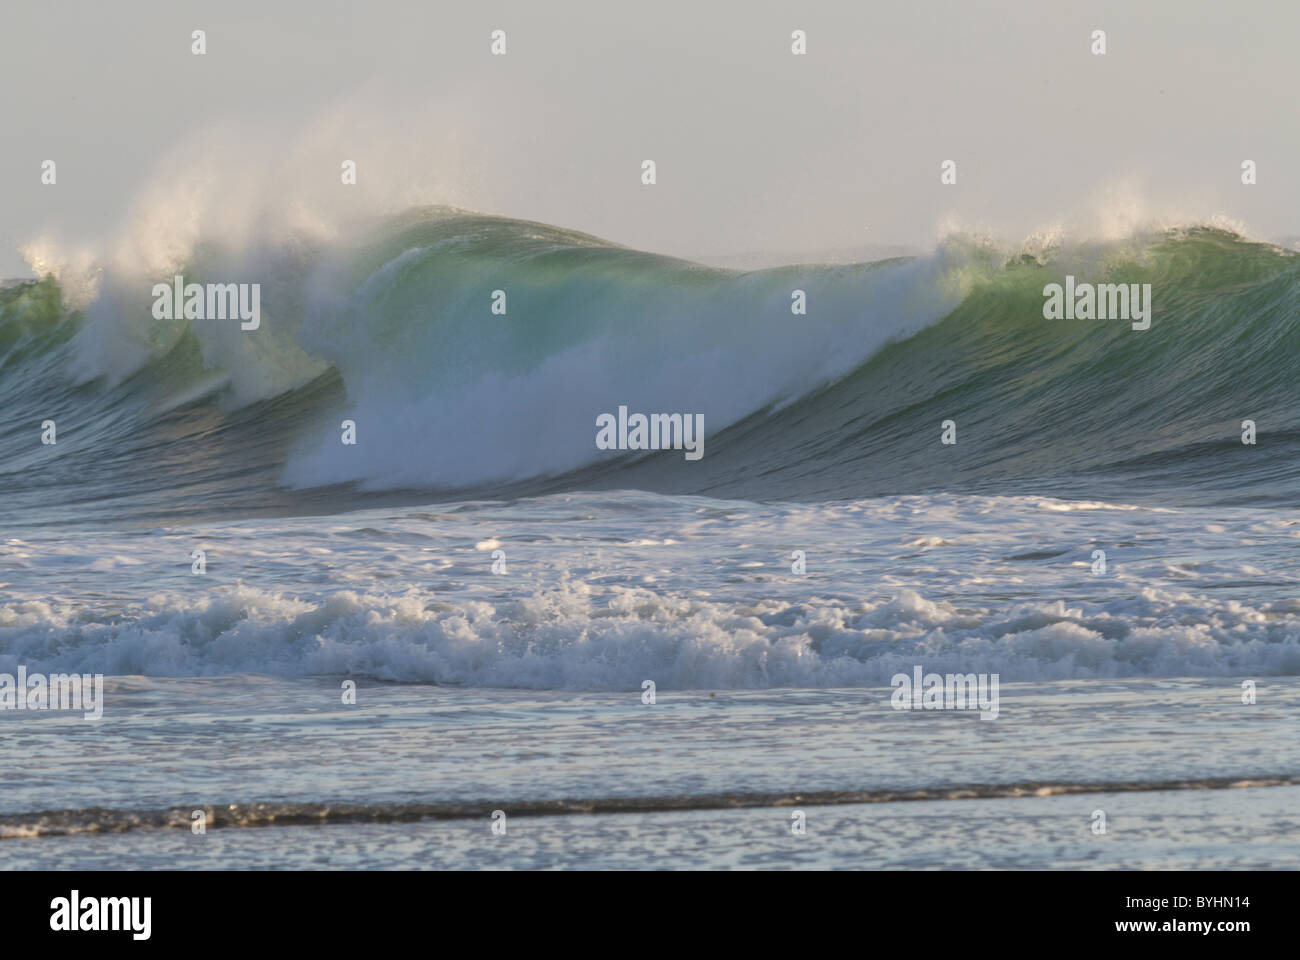 Wave with foam - Stock Image